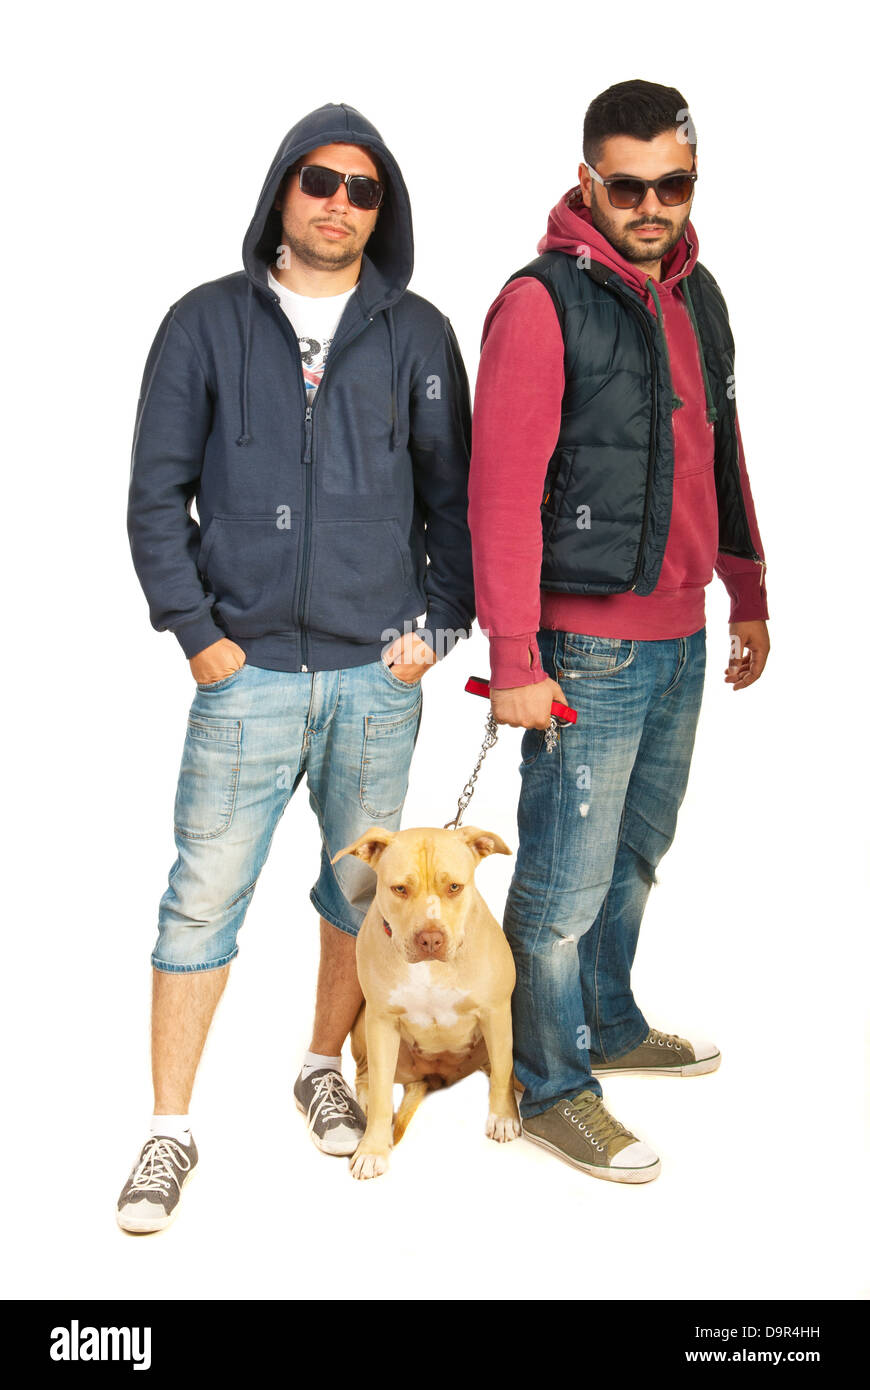 c85139fa7c4f Bad boys with pitbull isolated on white background Stock Photo ...